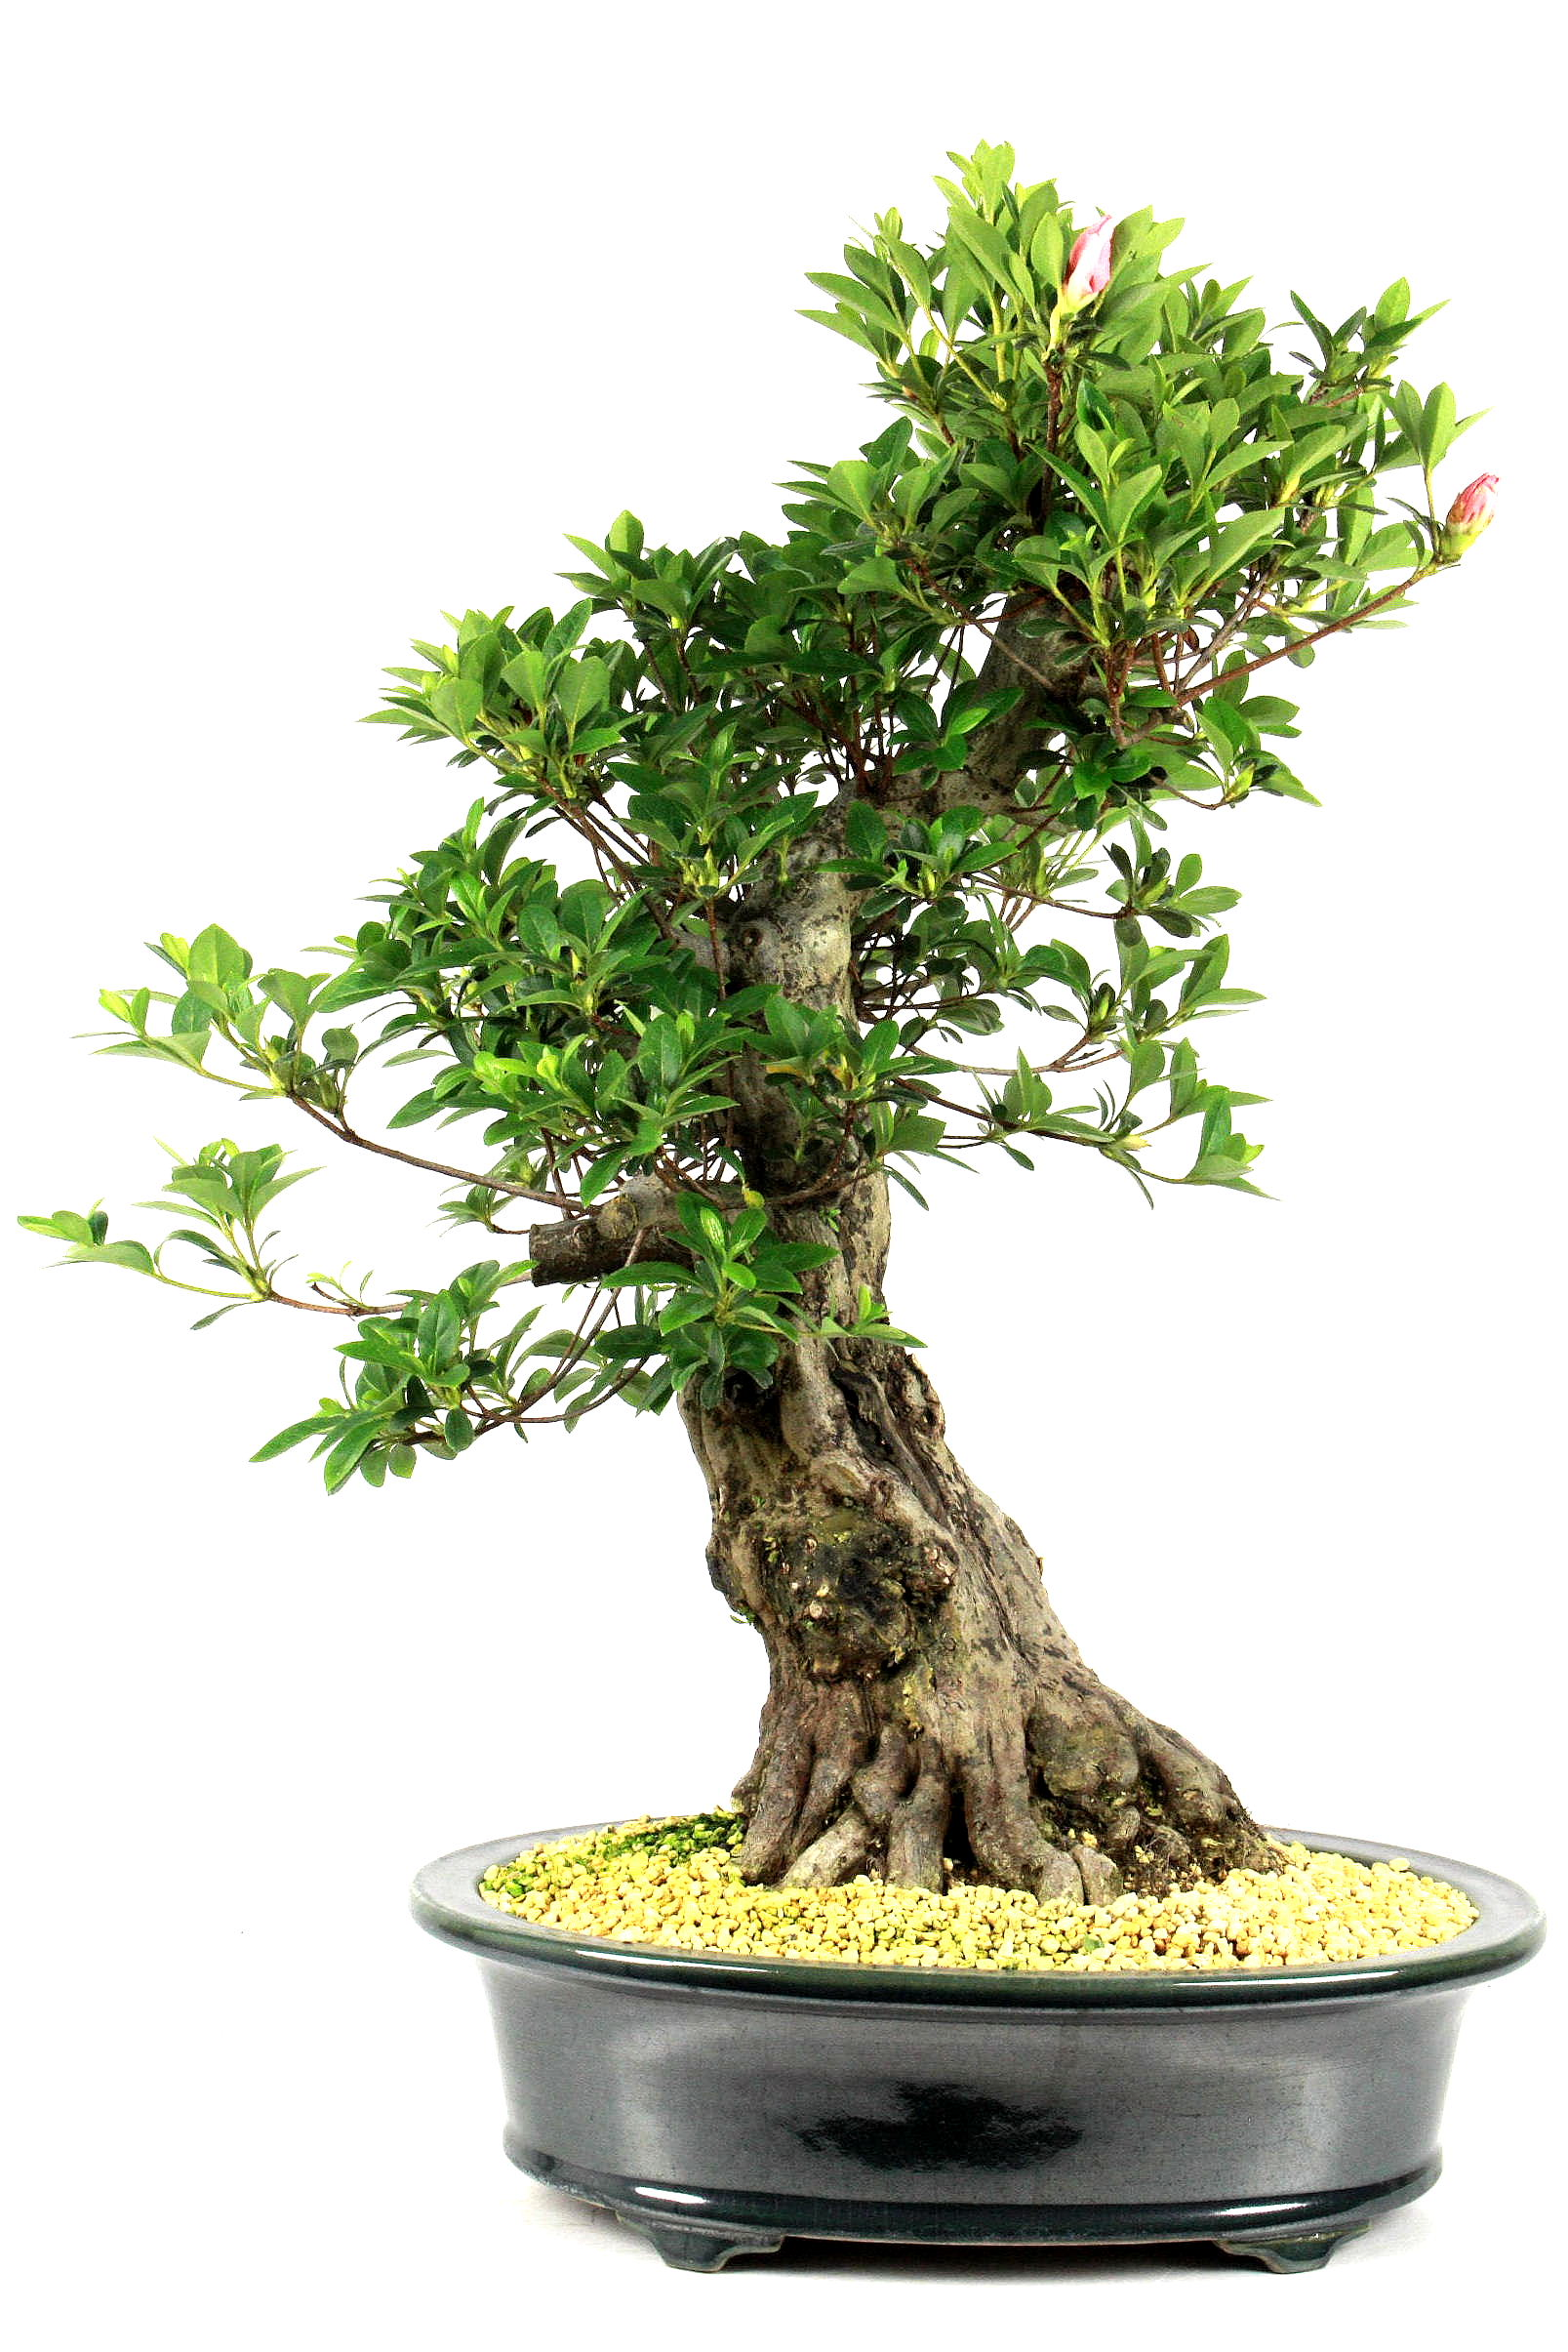 Azalee rhododendron indicum 60 cm 347 bei oyaki bonsai kaufen for Bonsai onlineshop